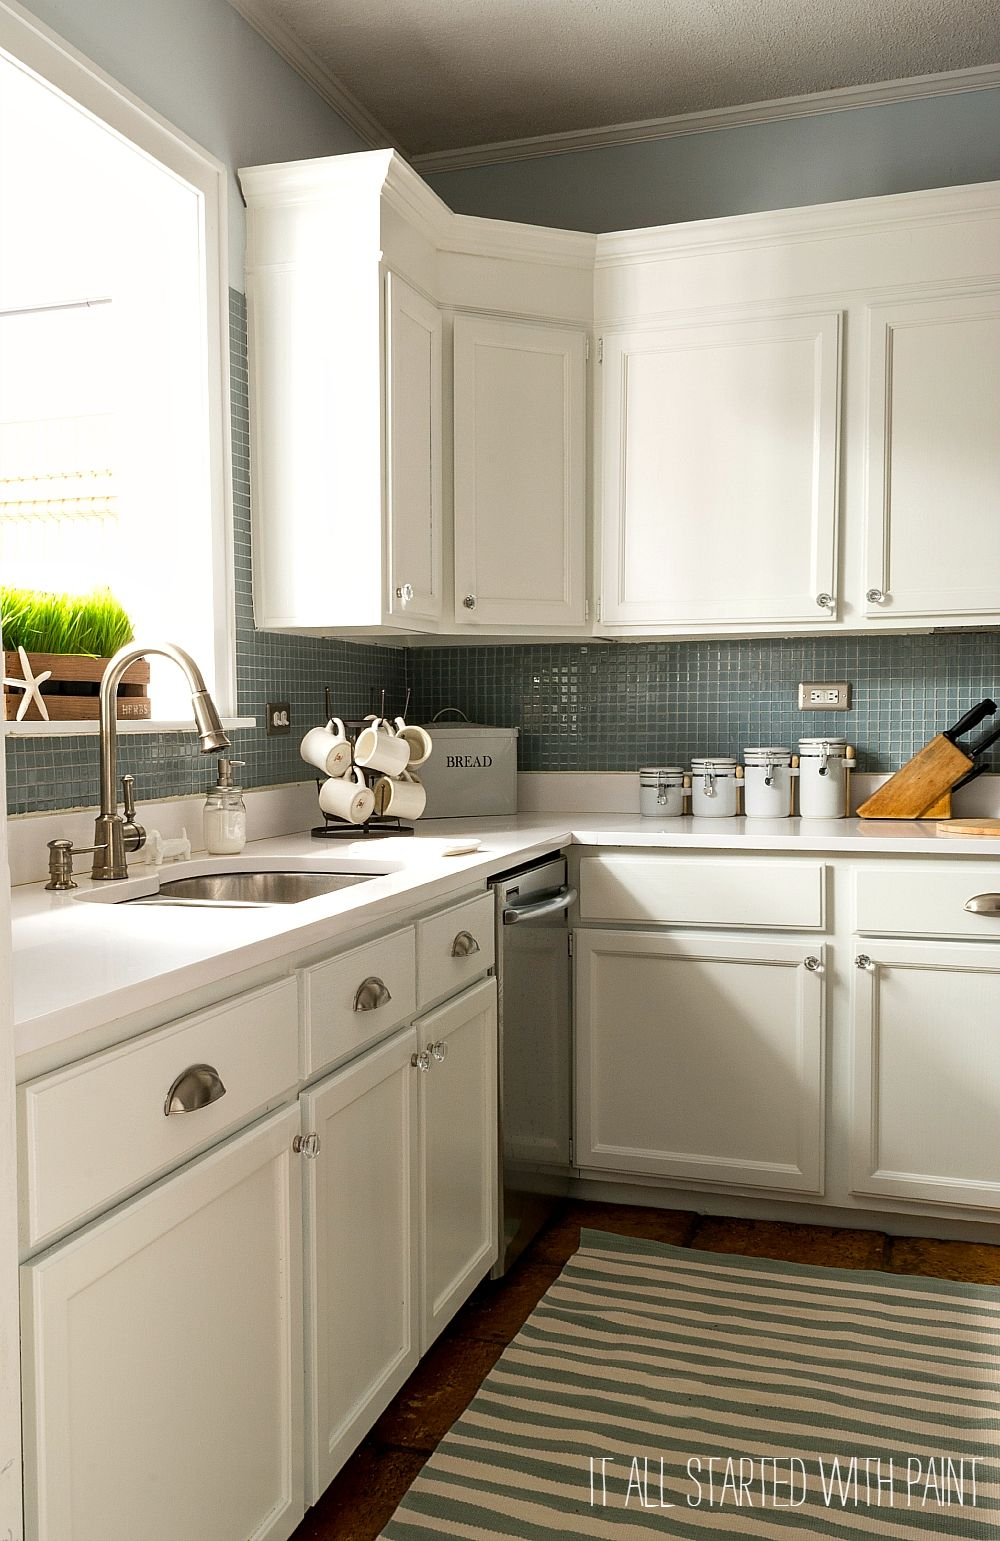 Builder Grade Kitchen Makeover With White Paint Kitchen Cabinets Decor Builder Grade Kitchen Kitchen Cabinets